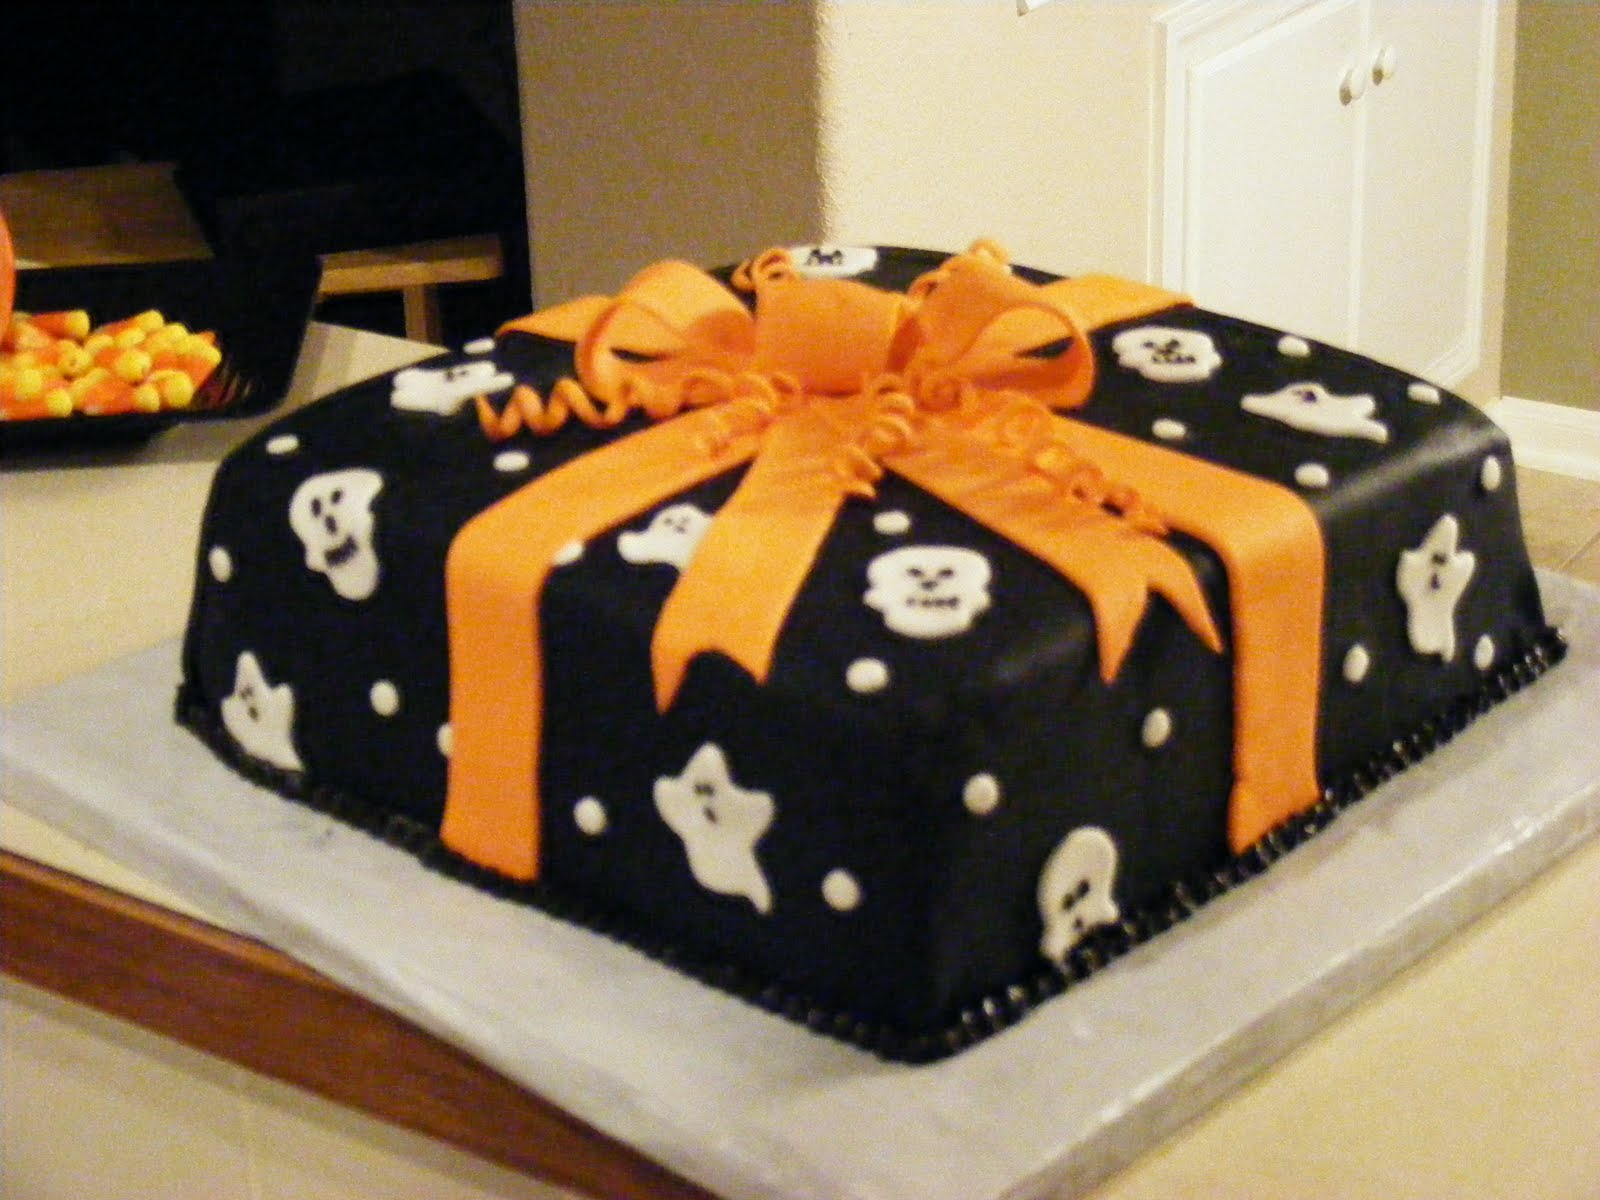 Fondant Cake Halloween Ideas : PattiCakes!: Halloween Cake (Class III, final cake ...